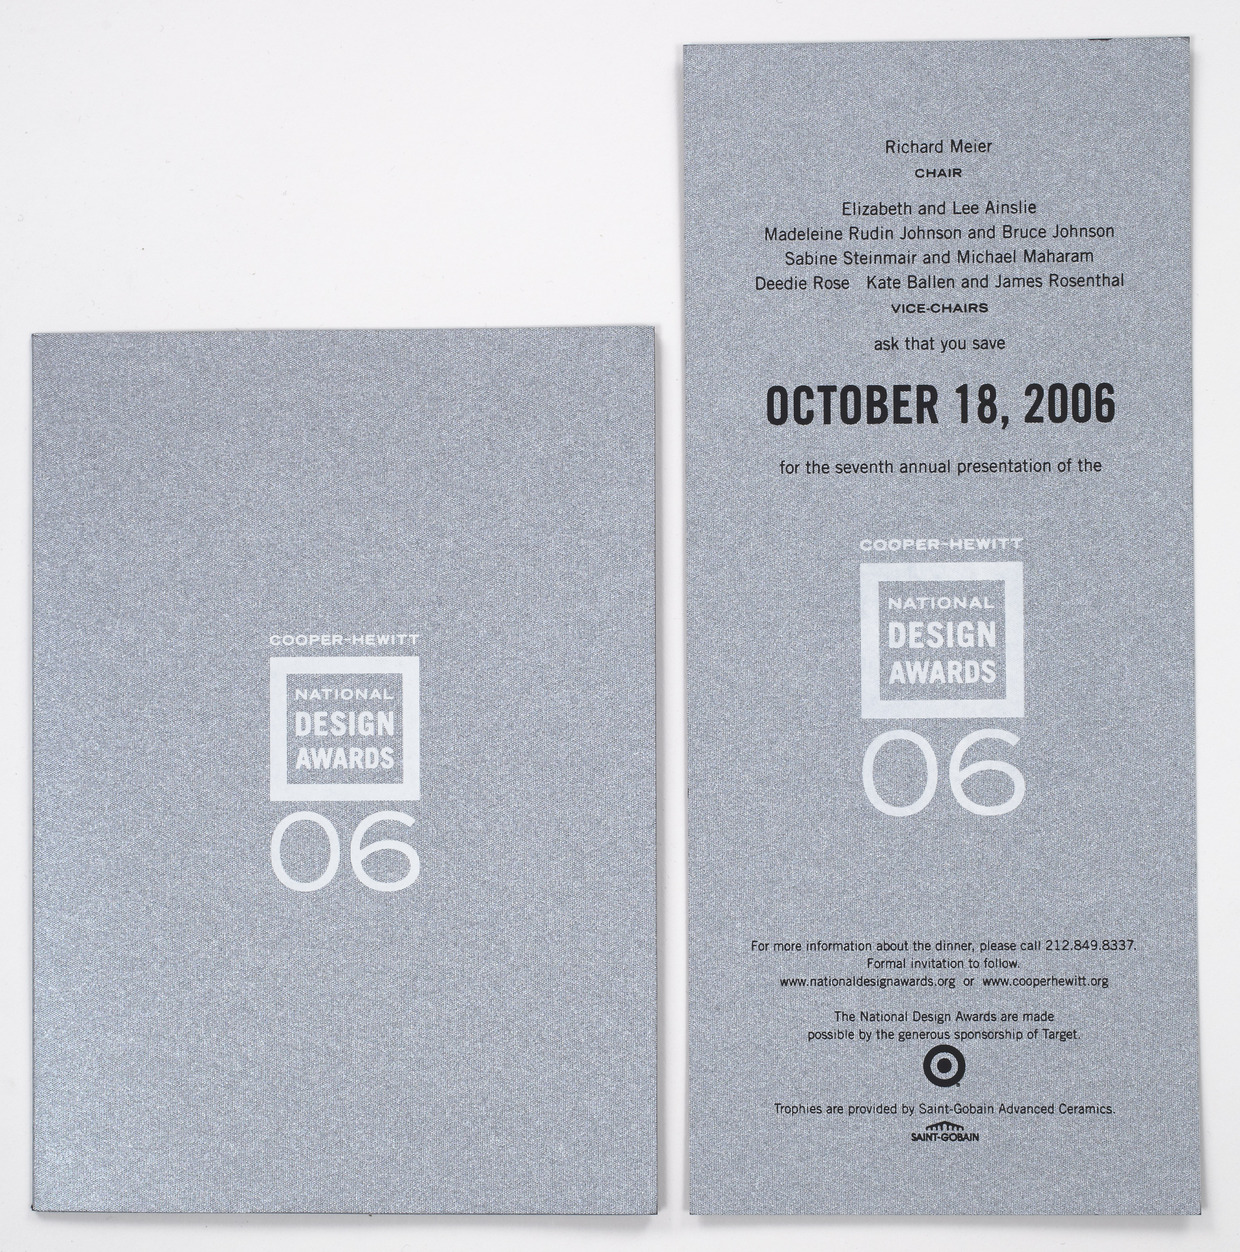 2006 was the first year that the National Design Awards Gala was a black tie event. Tsang Seymour secured paper mill donation of an important metallic silver and black dye paper duplex paper stock to communicate the shift from a dinner banquet to a gala celebration.